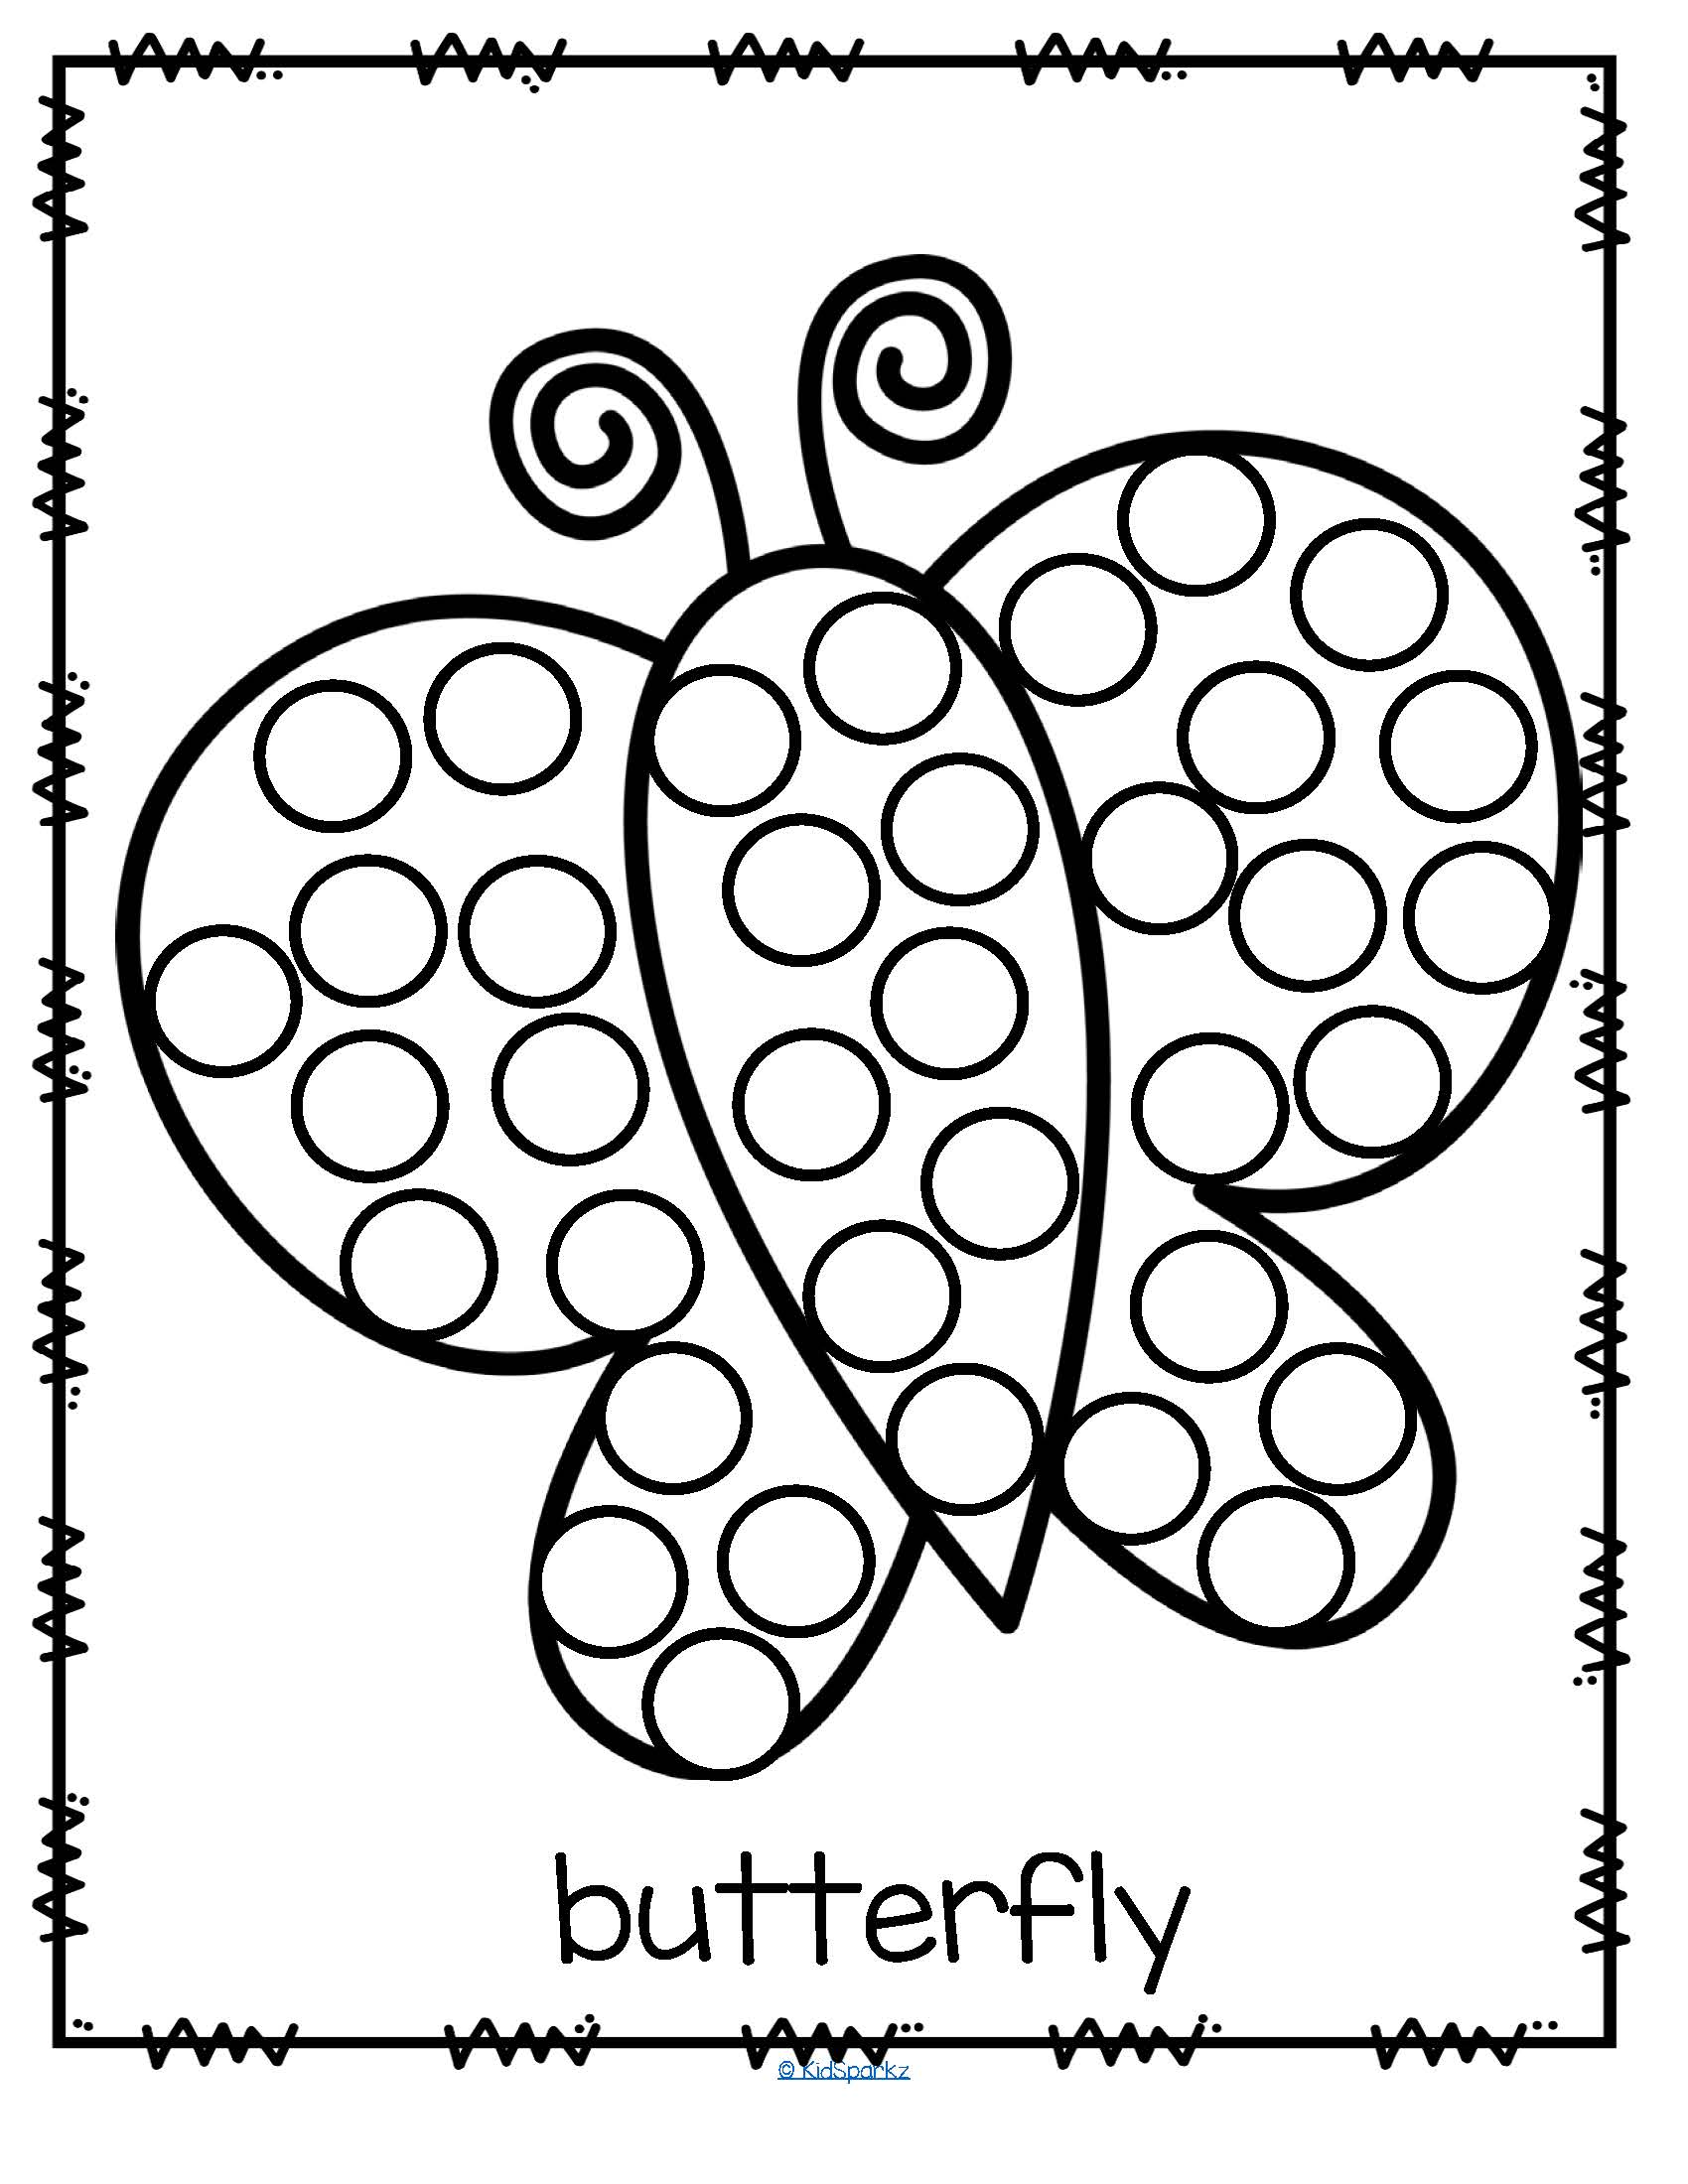 Do A Dot Coloring Pages At Getcolorings